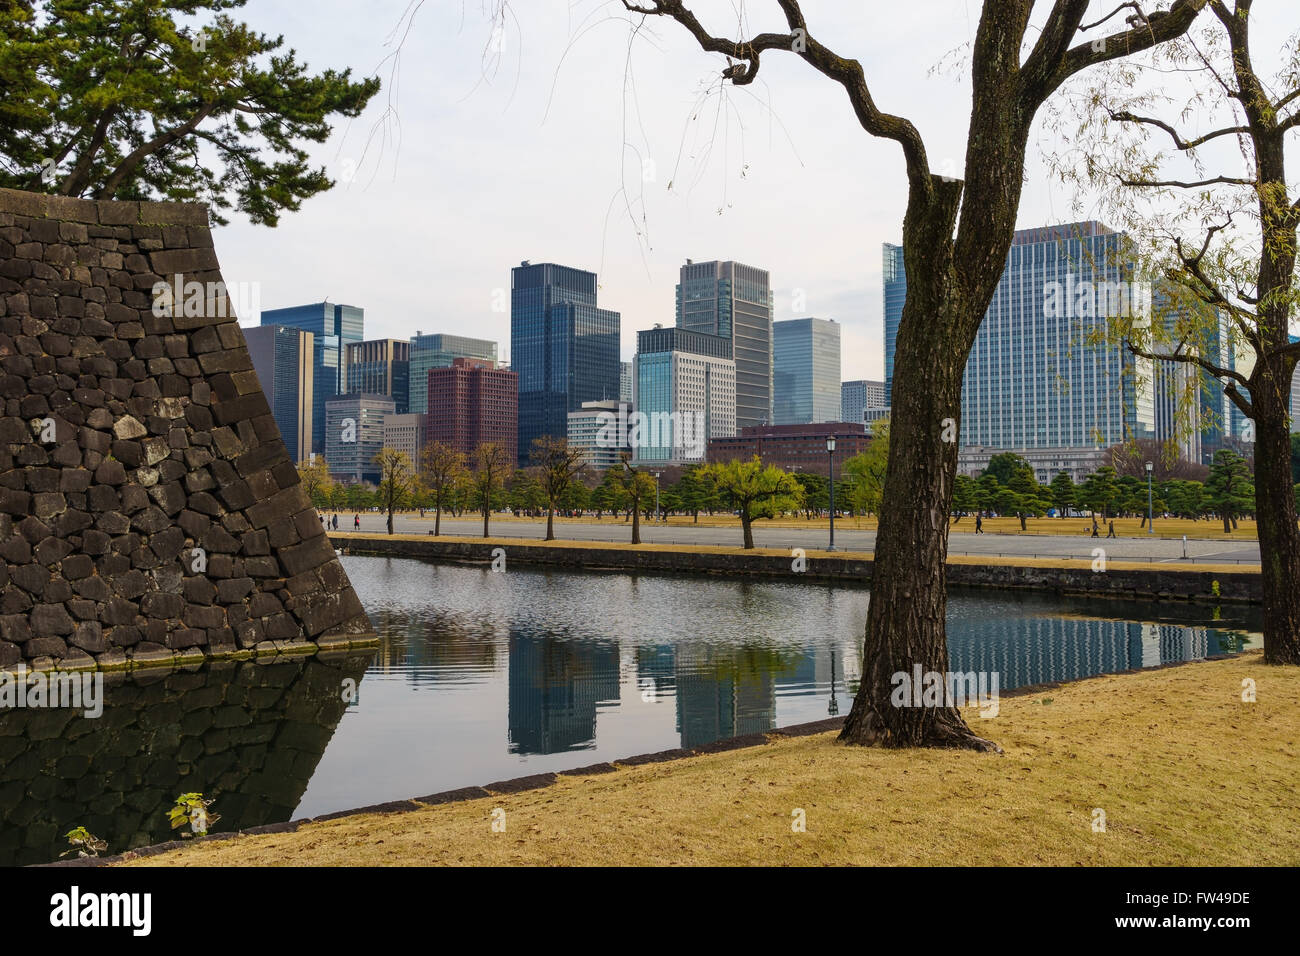 The moat and gardens at the Imperial Palace against the city skyline, Tokyo, Japan. Stock Photo